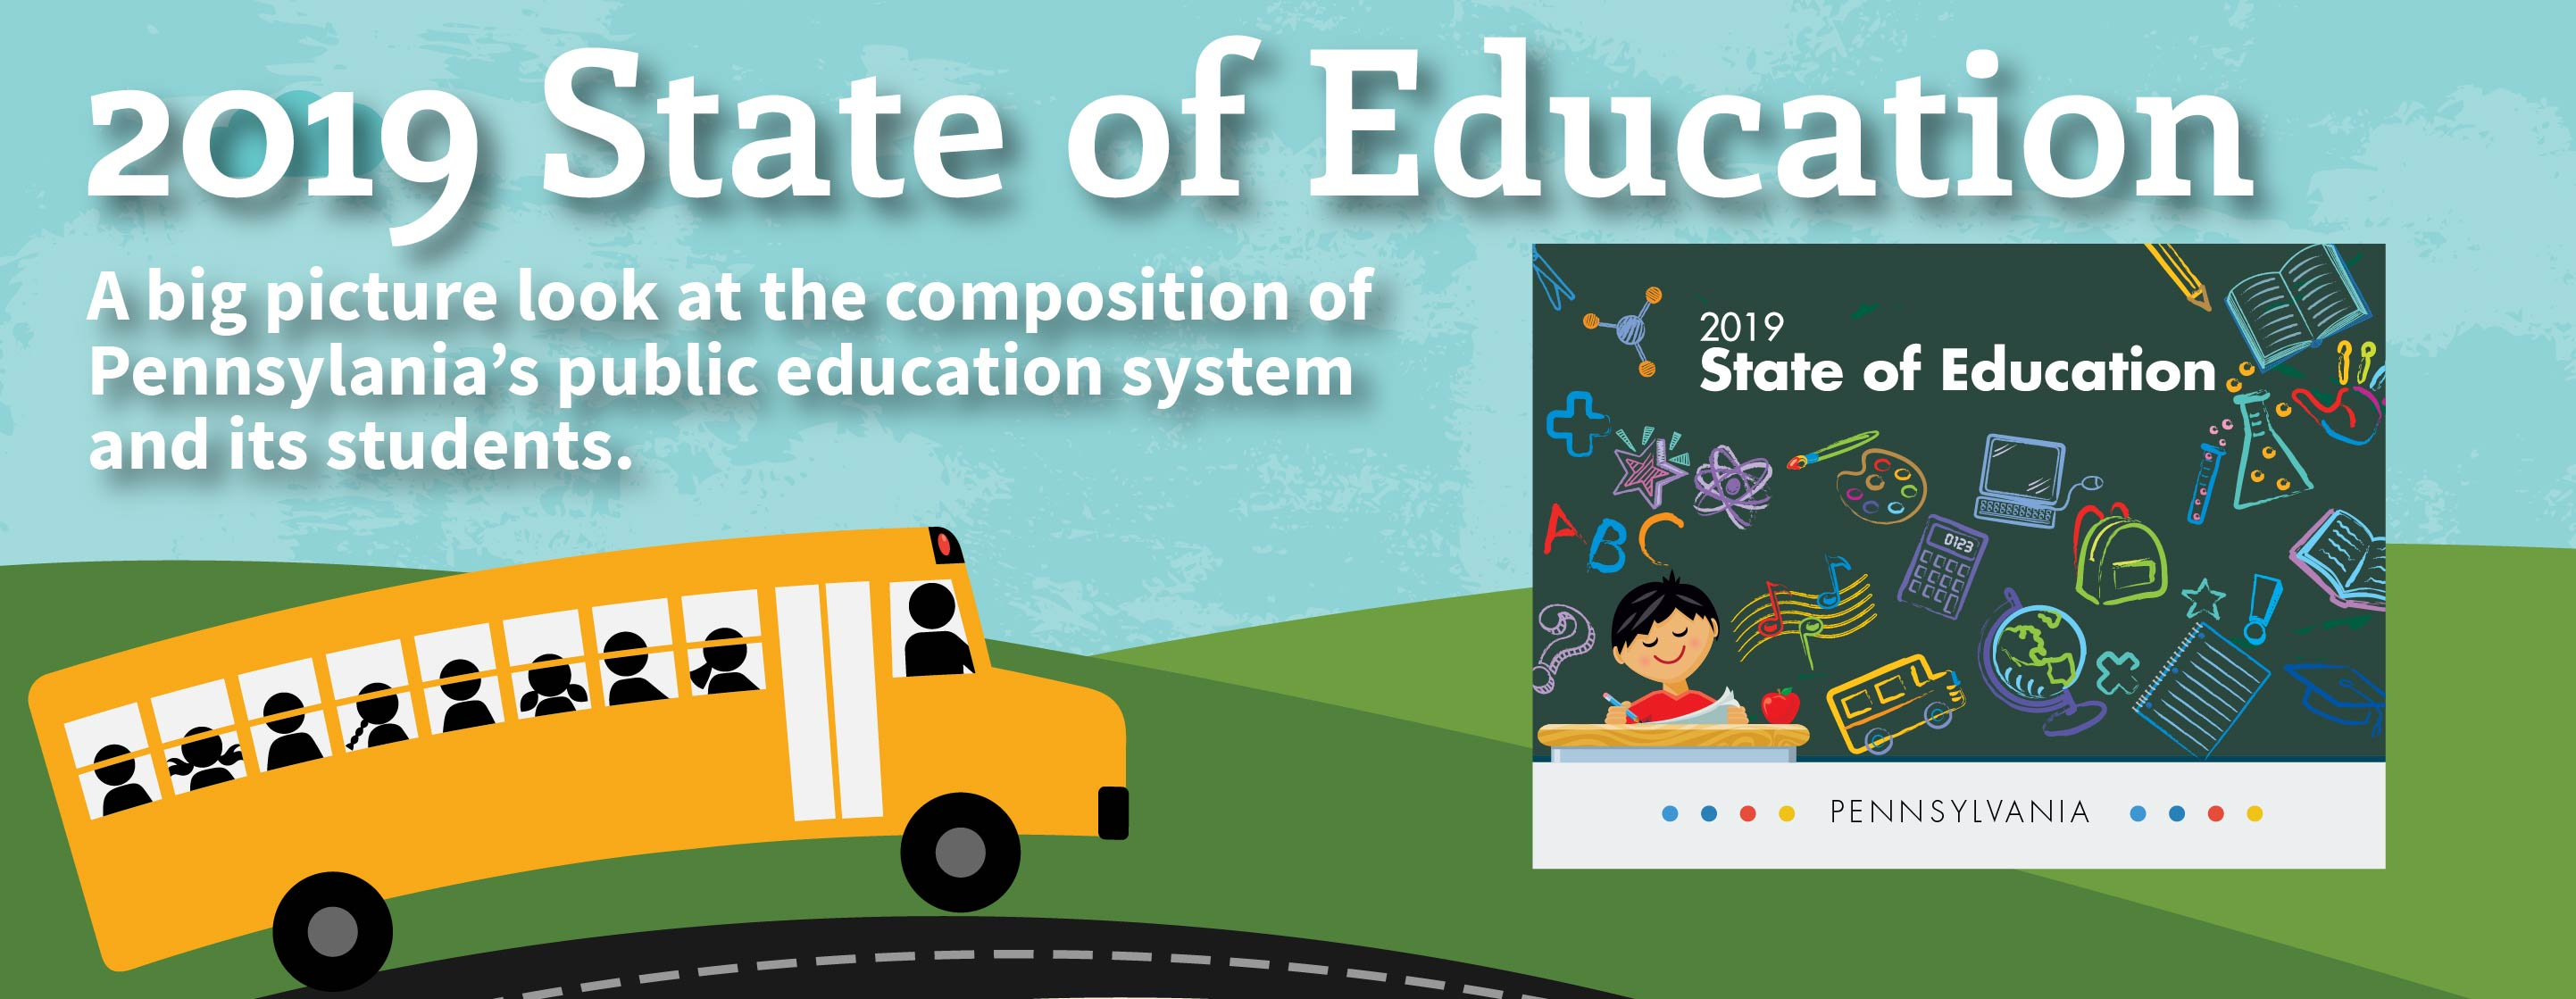 2019 State of Education Report